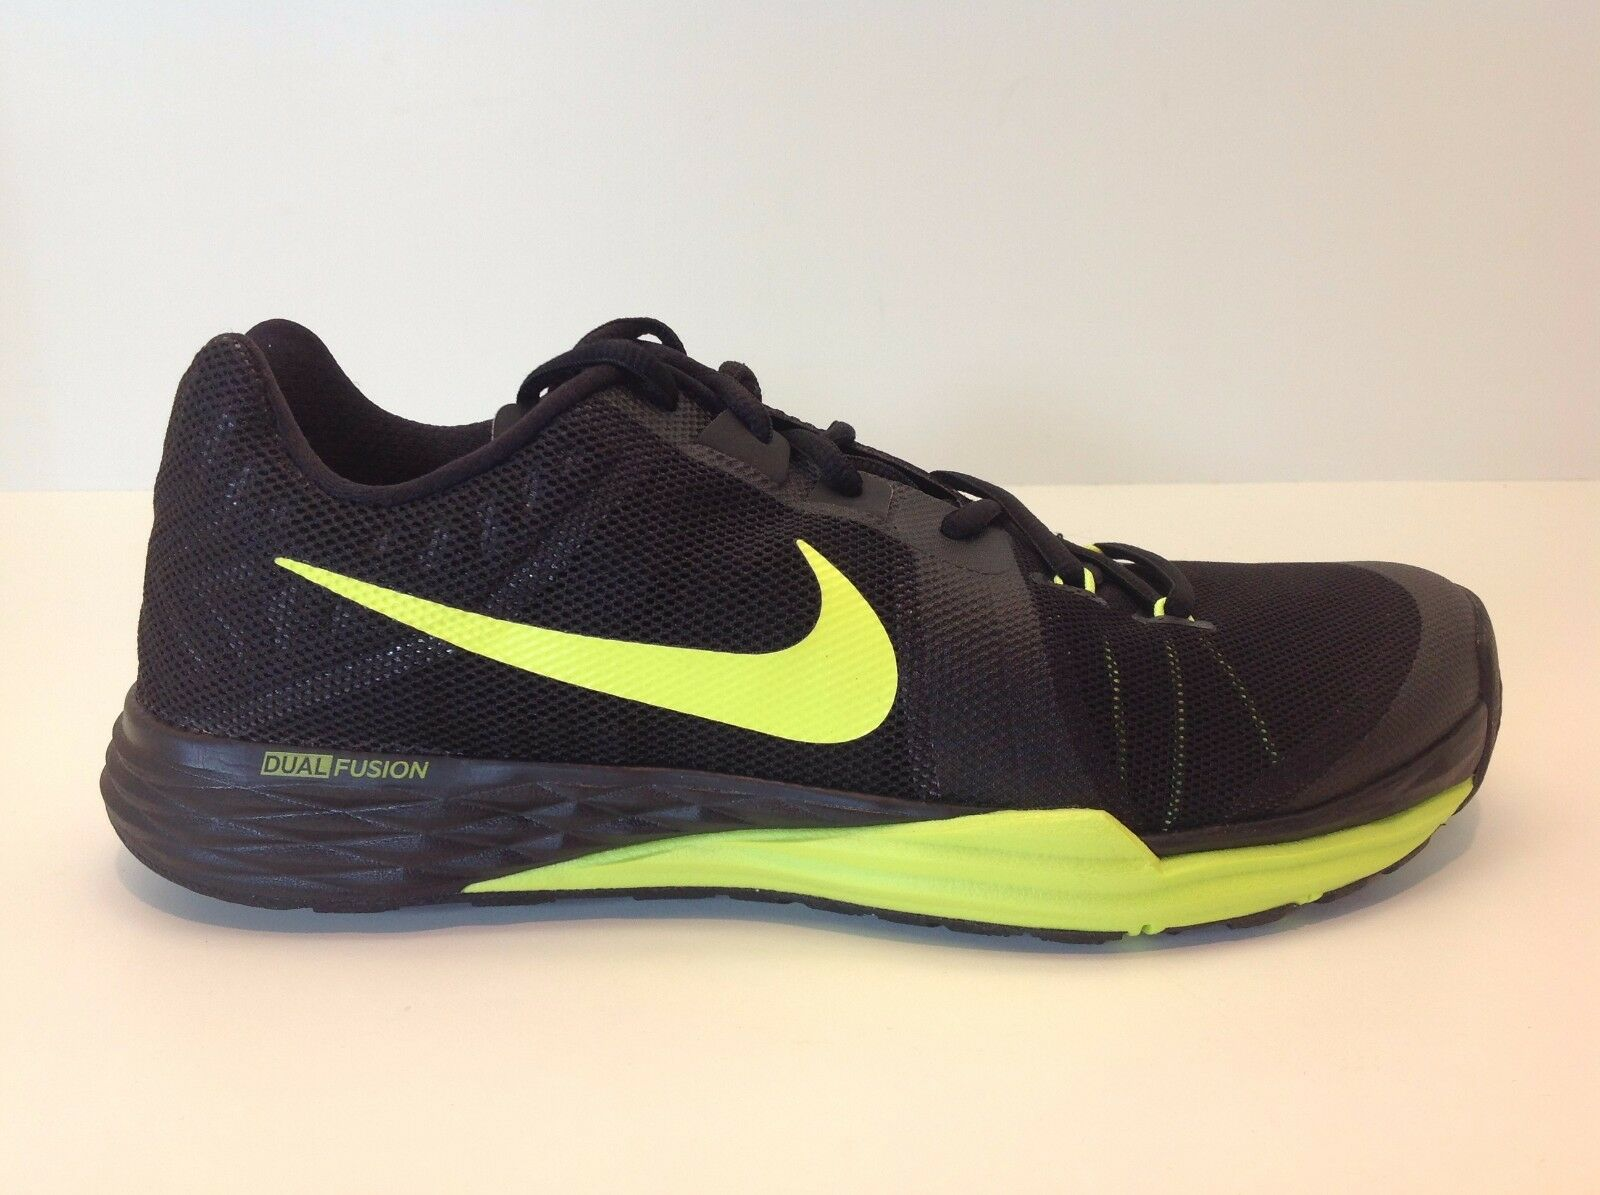 Nike Train Prime Iron DF Men's Size 8-12 Black/Volt New in Box 832219 008